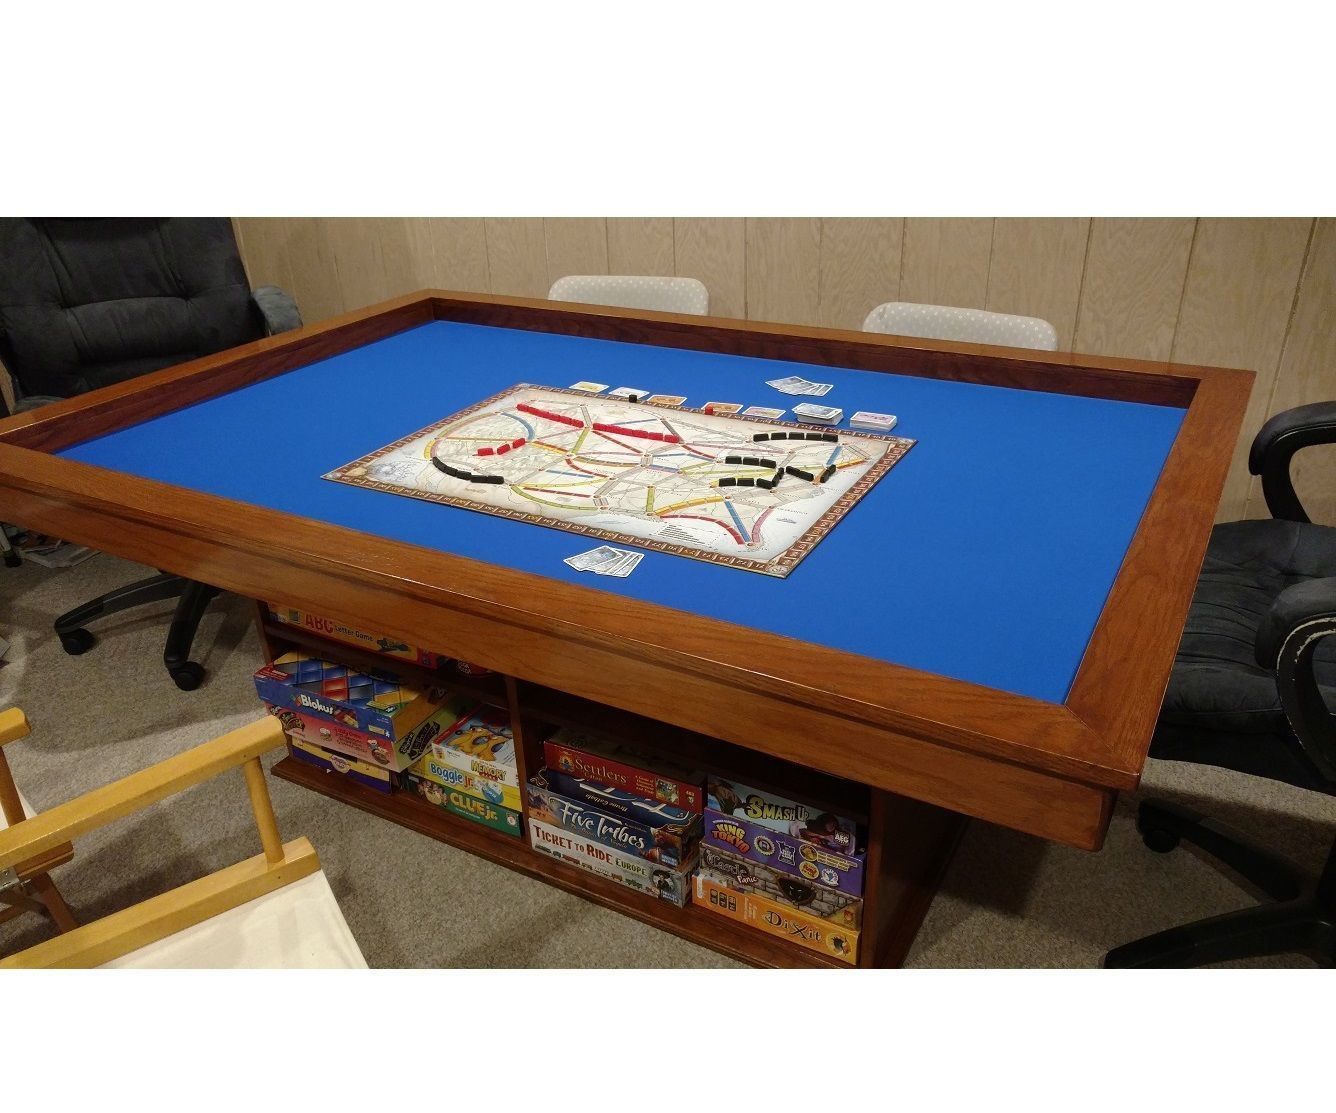 make your own gaming table with built-in game storage | play areas